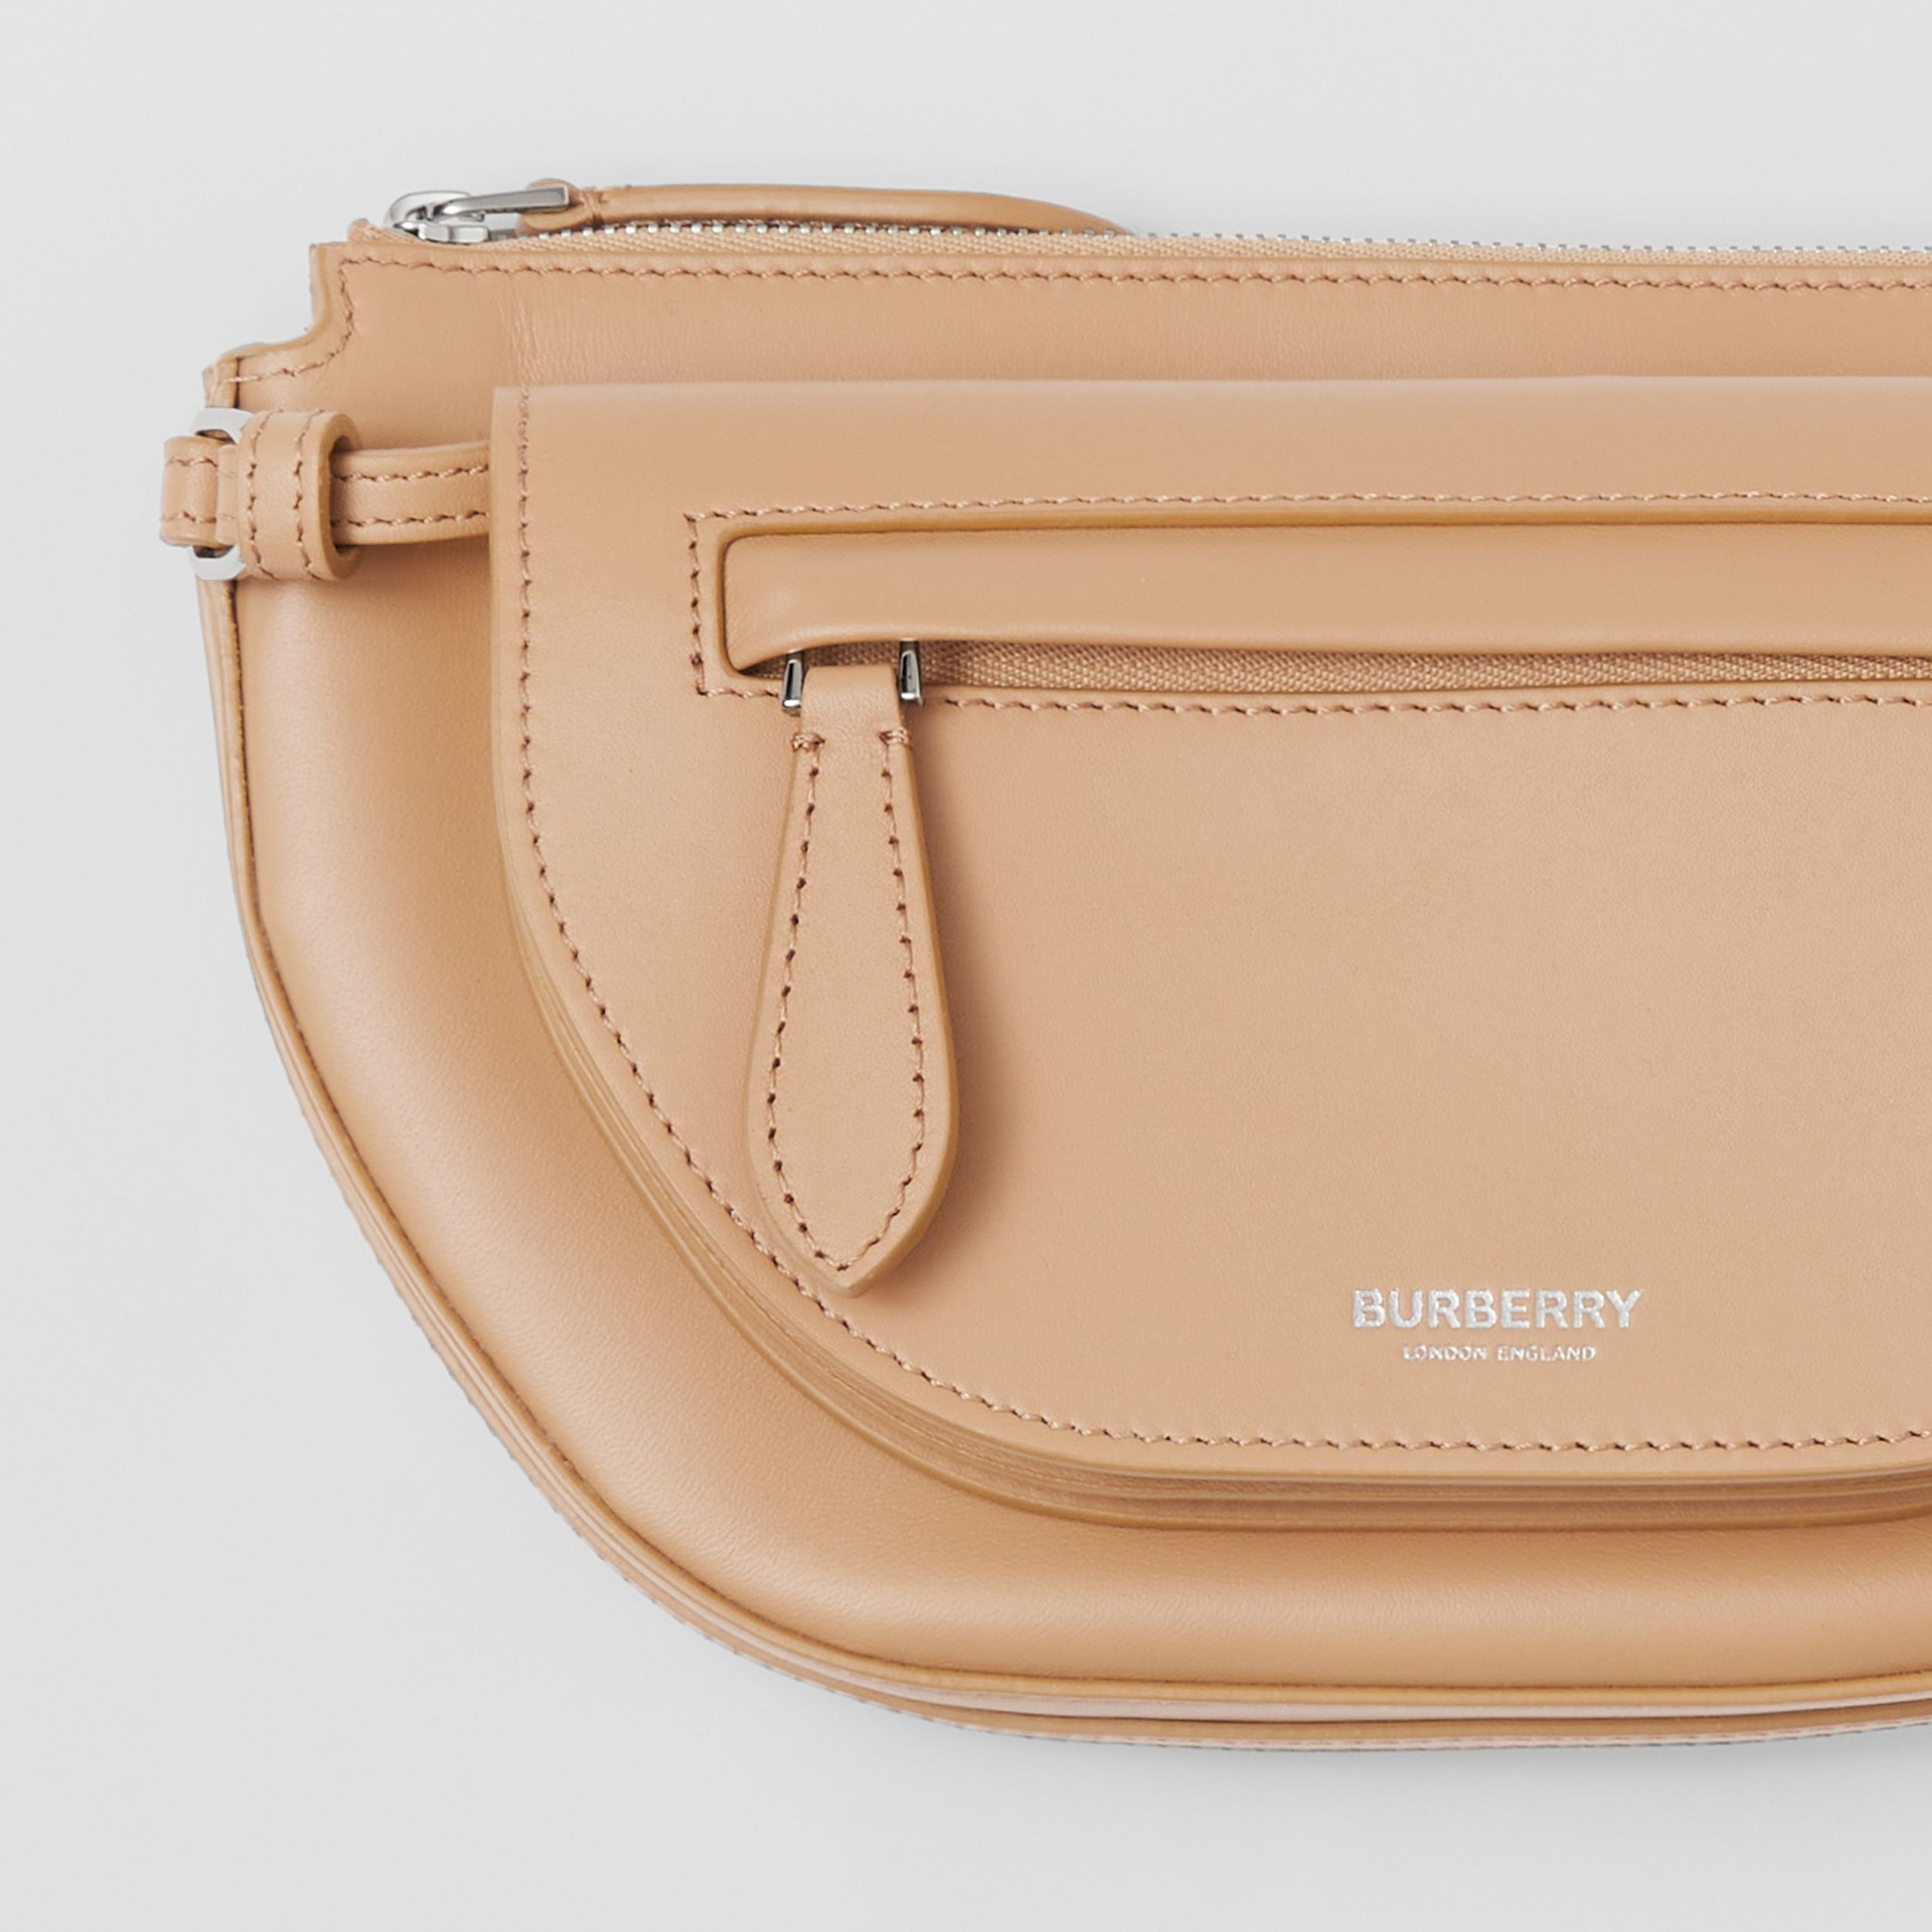 Mini Leather Double Olympia Bag in Warm Sand - Women | Burberry - 2